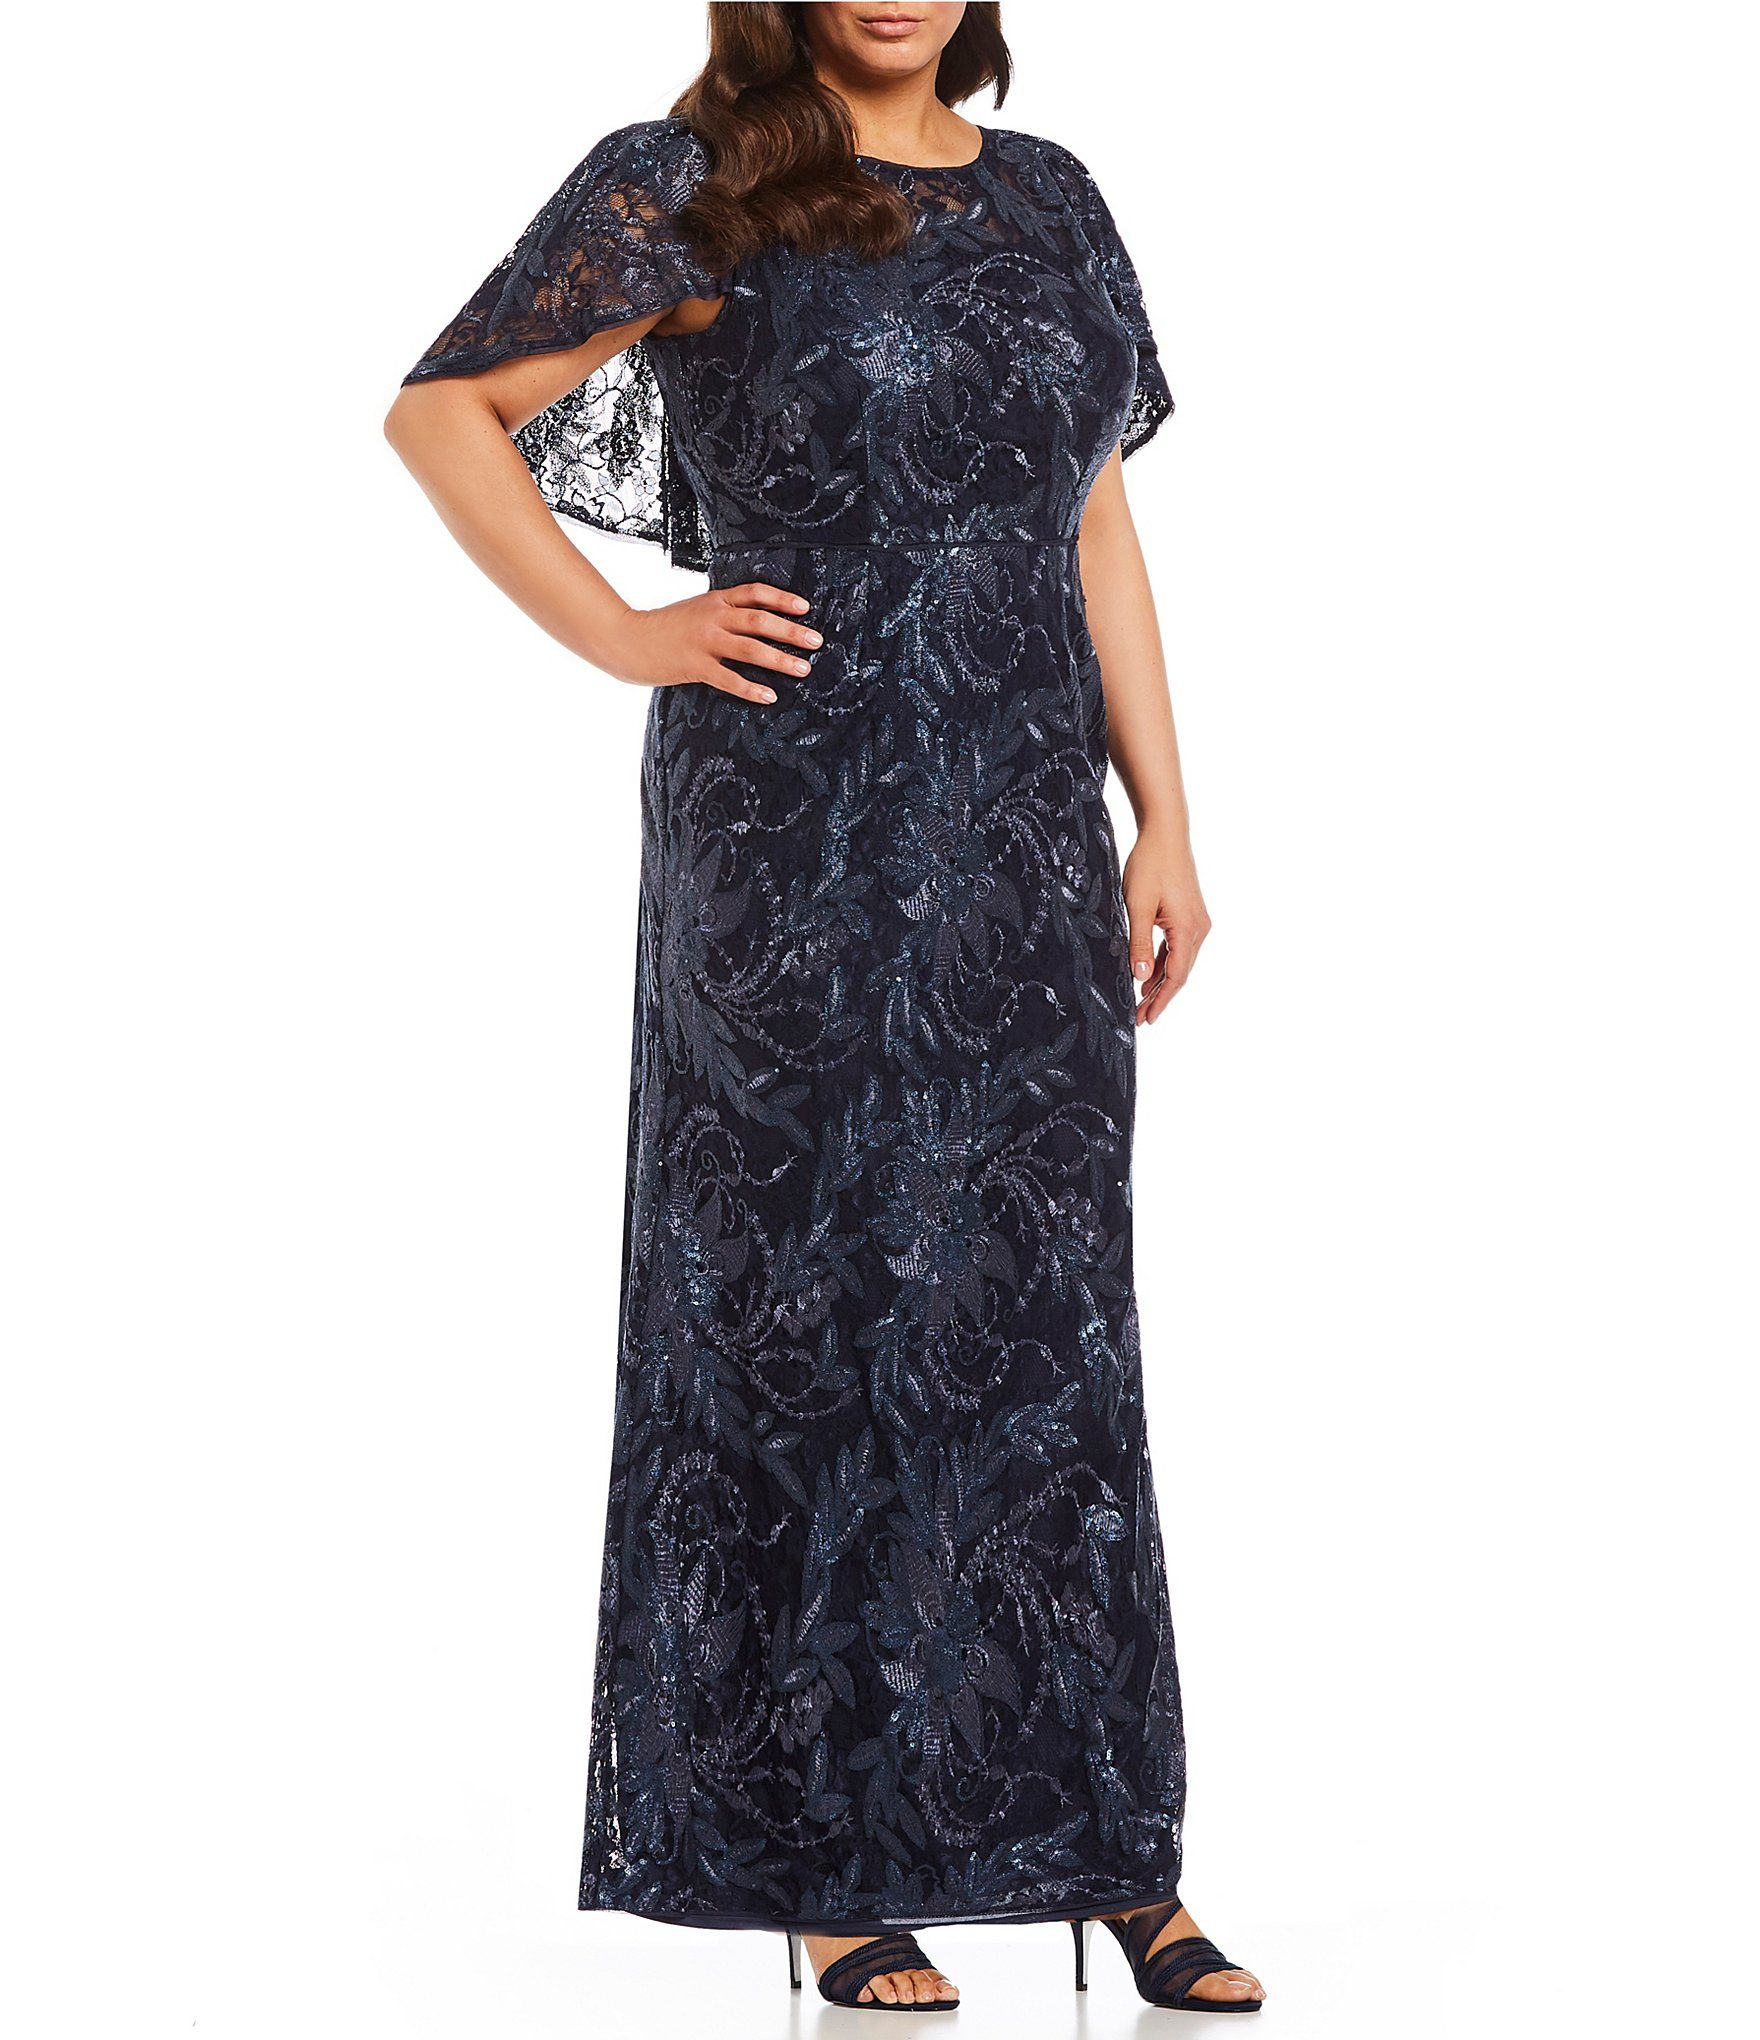 b2d4ae439fe Shop for Adrianna Papell Plus Size Caplet Sequin Lace Gown at Dillards.com. Visit  Dillards.com to find clothing